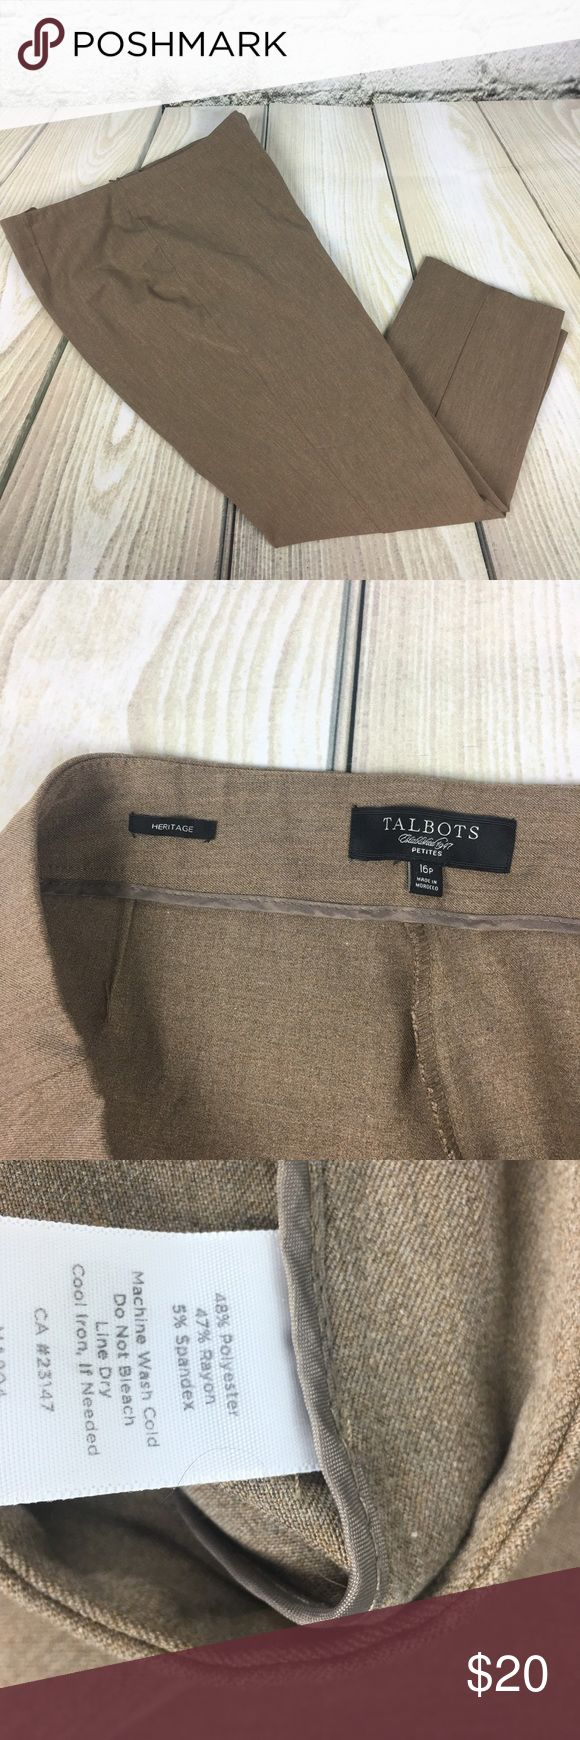 "Talbots Heritage Sandy Beige dress pants sz 16P Great staple for the office. Size 16 Petite. Measures 18"" across the waist laying flat. Inseam- 27"". Excellent Condition Talbots Pants"